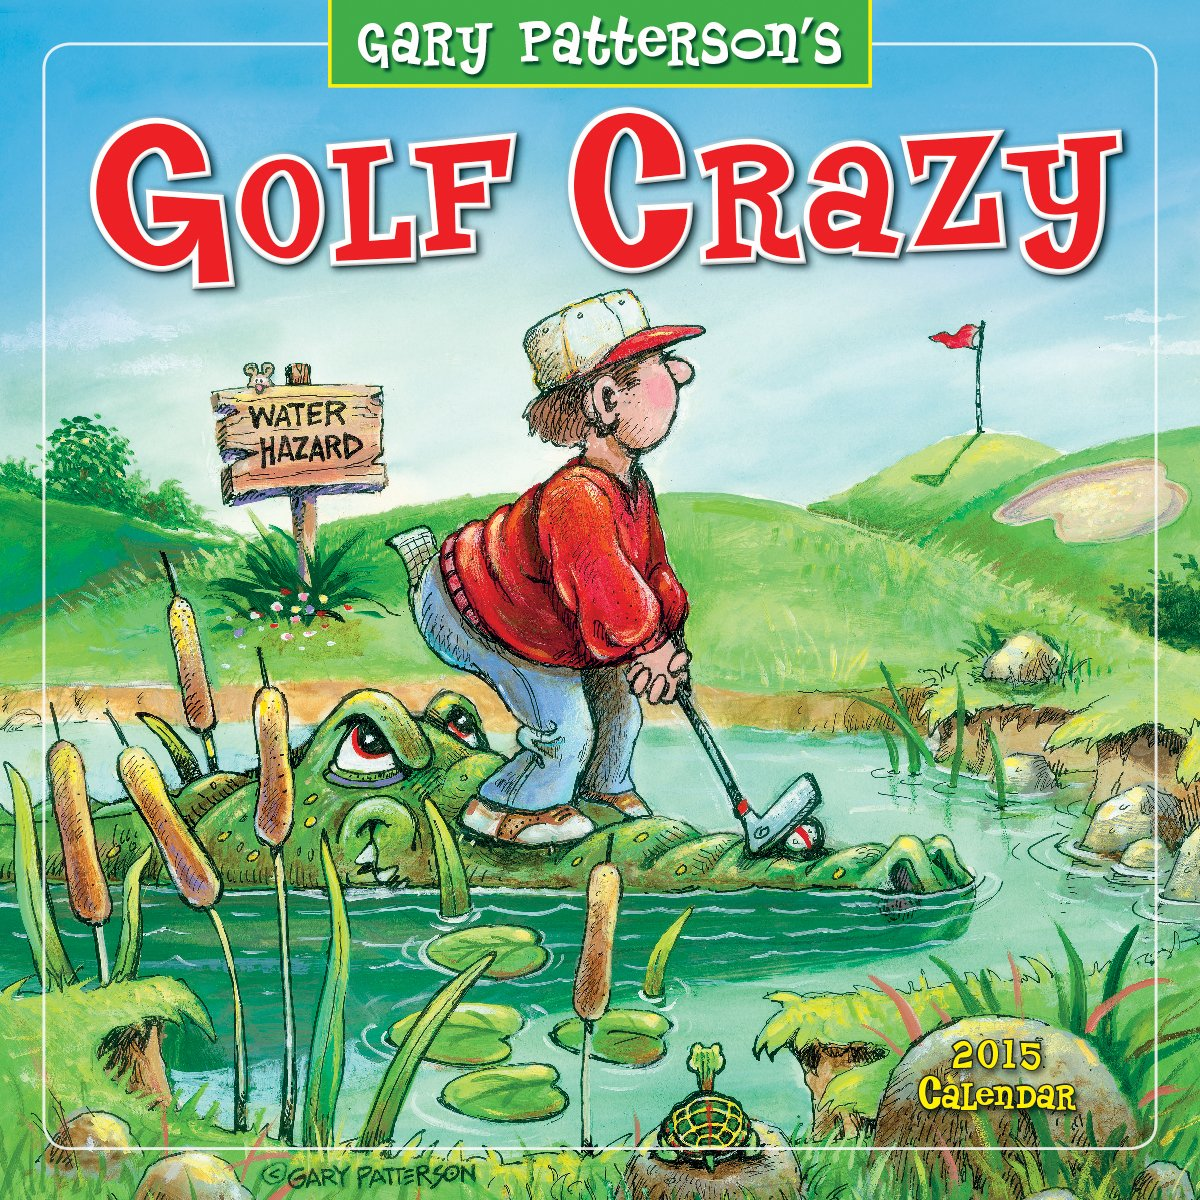 Golf Crazy by Gary Patterson 2015 Wall Calendar: Gary Patterson